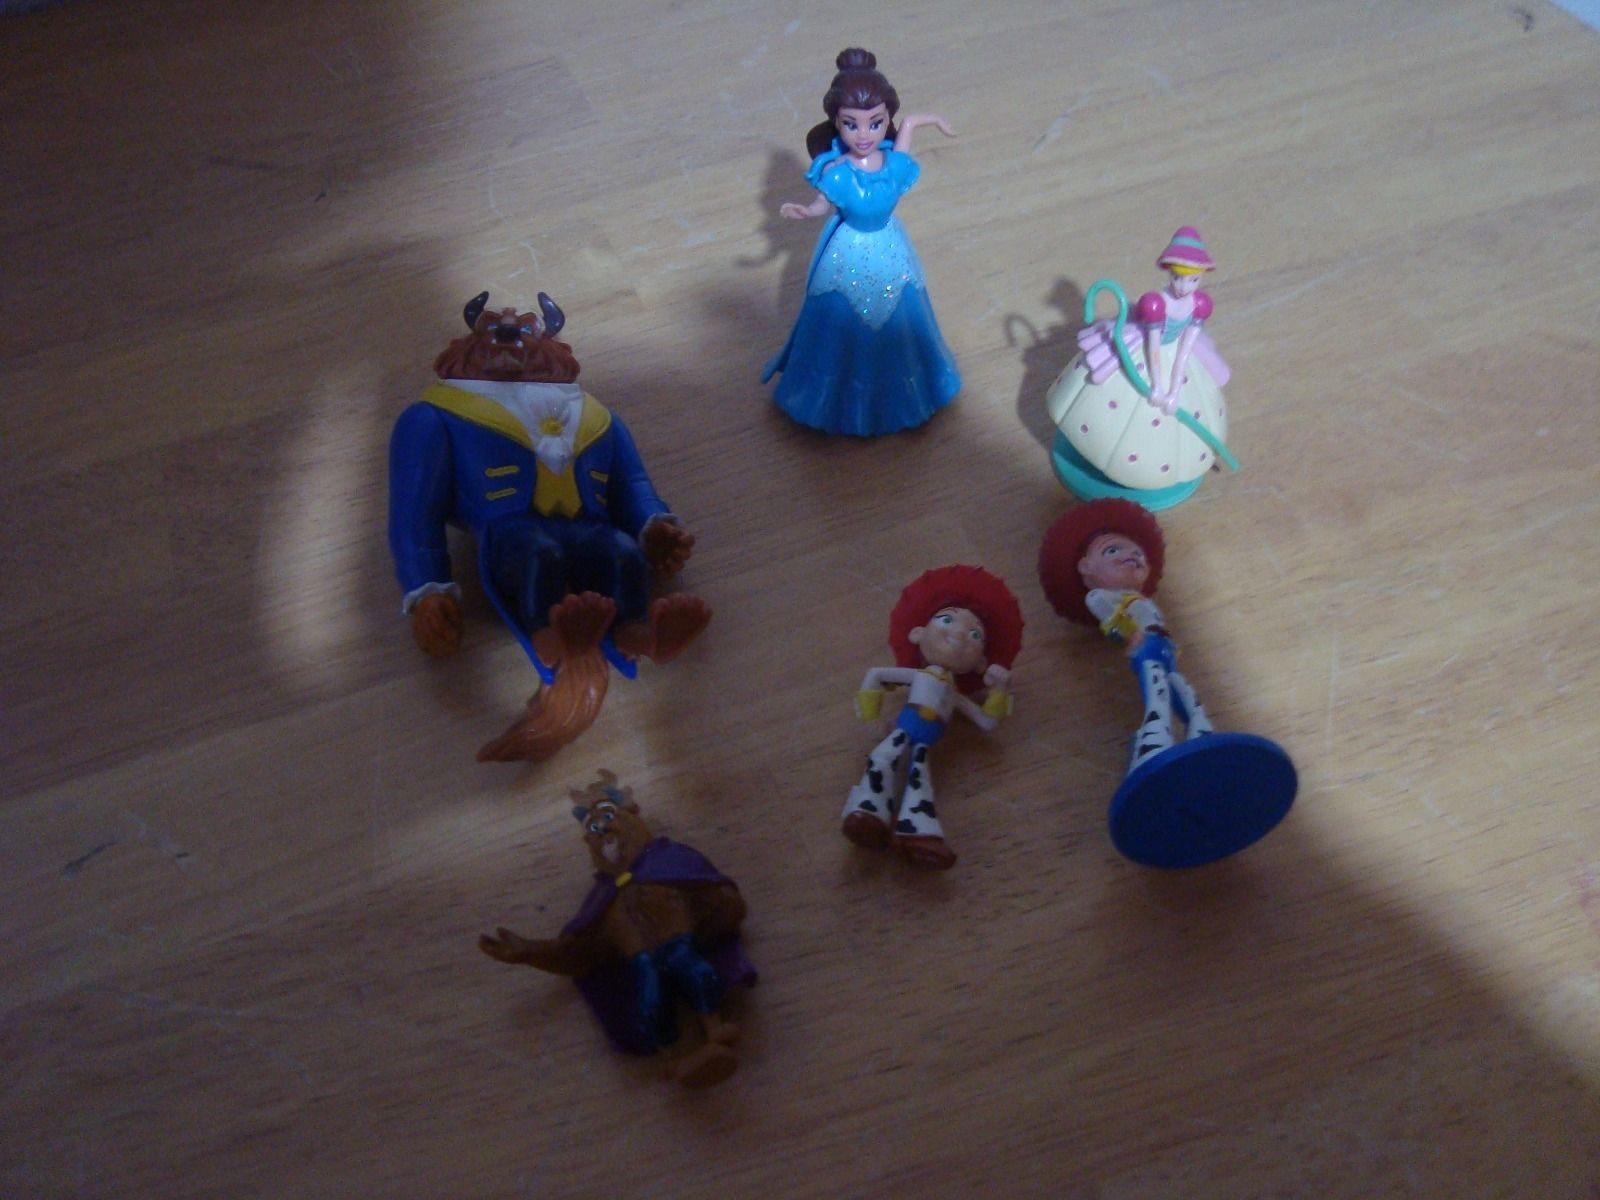 Toy Story Figurines : Lot of lego figurines toy story customized etsy